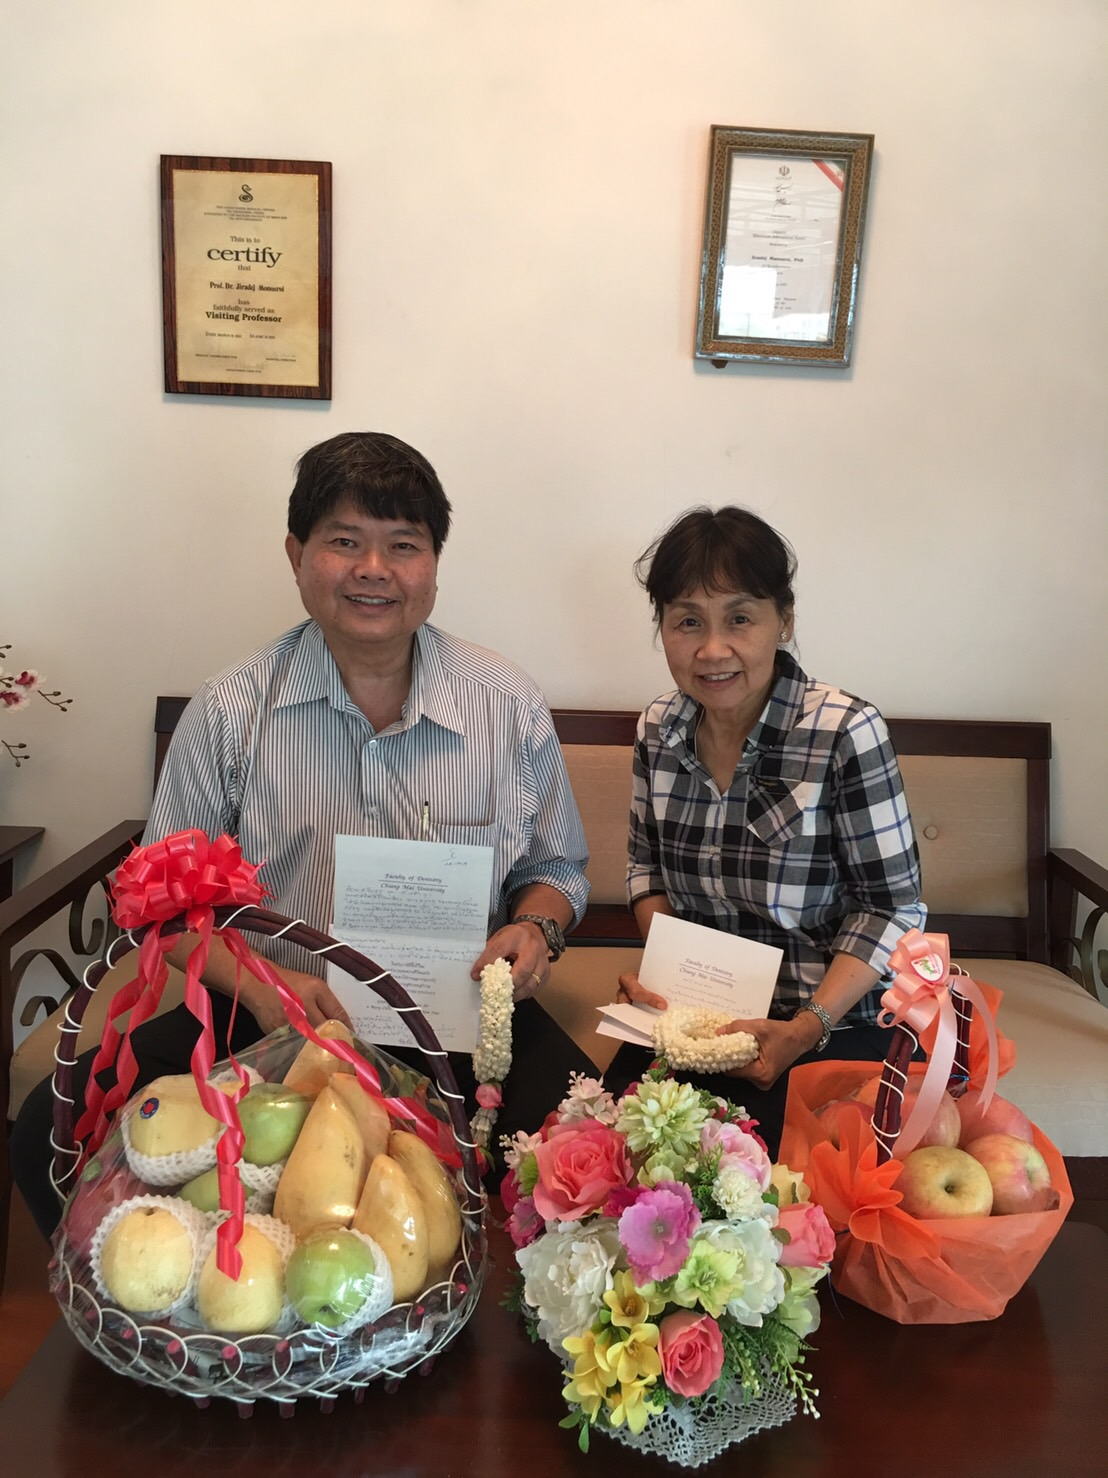 Asst. Prof. Dr. Kassara Pattamapun and Prof. Dr. Chatchai Tayapiwatana have come to pay respect to the board of Manose Health and Beauty Research Center on the occasion of Thai New Year (Songkran Festival)